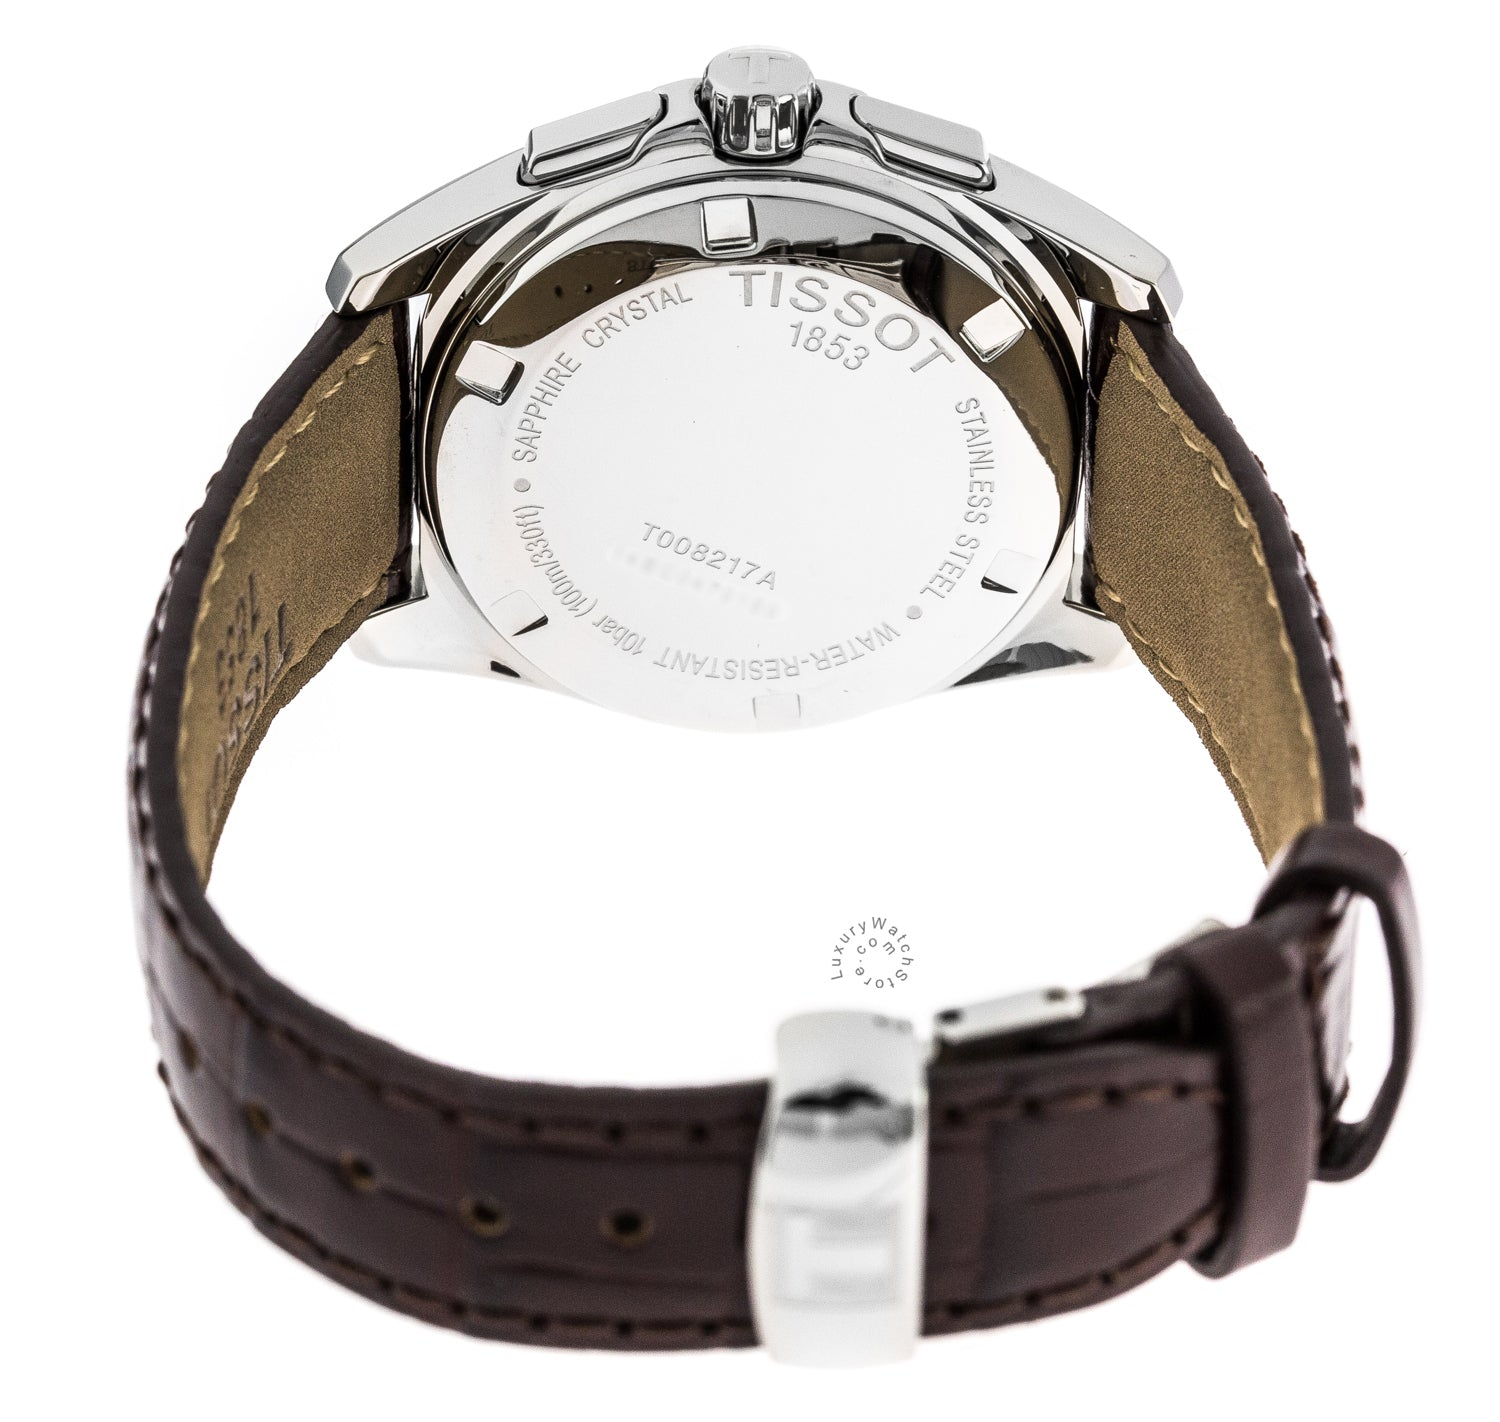 Tissot PRC 100 Chronograph BRN Dial Leather Women Watch T0082171629100